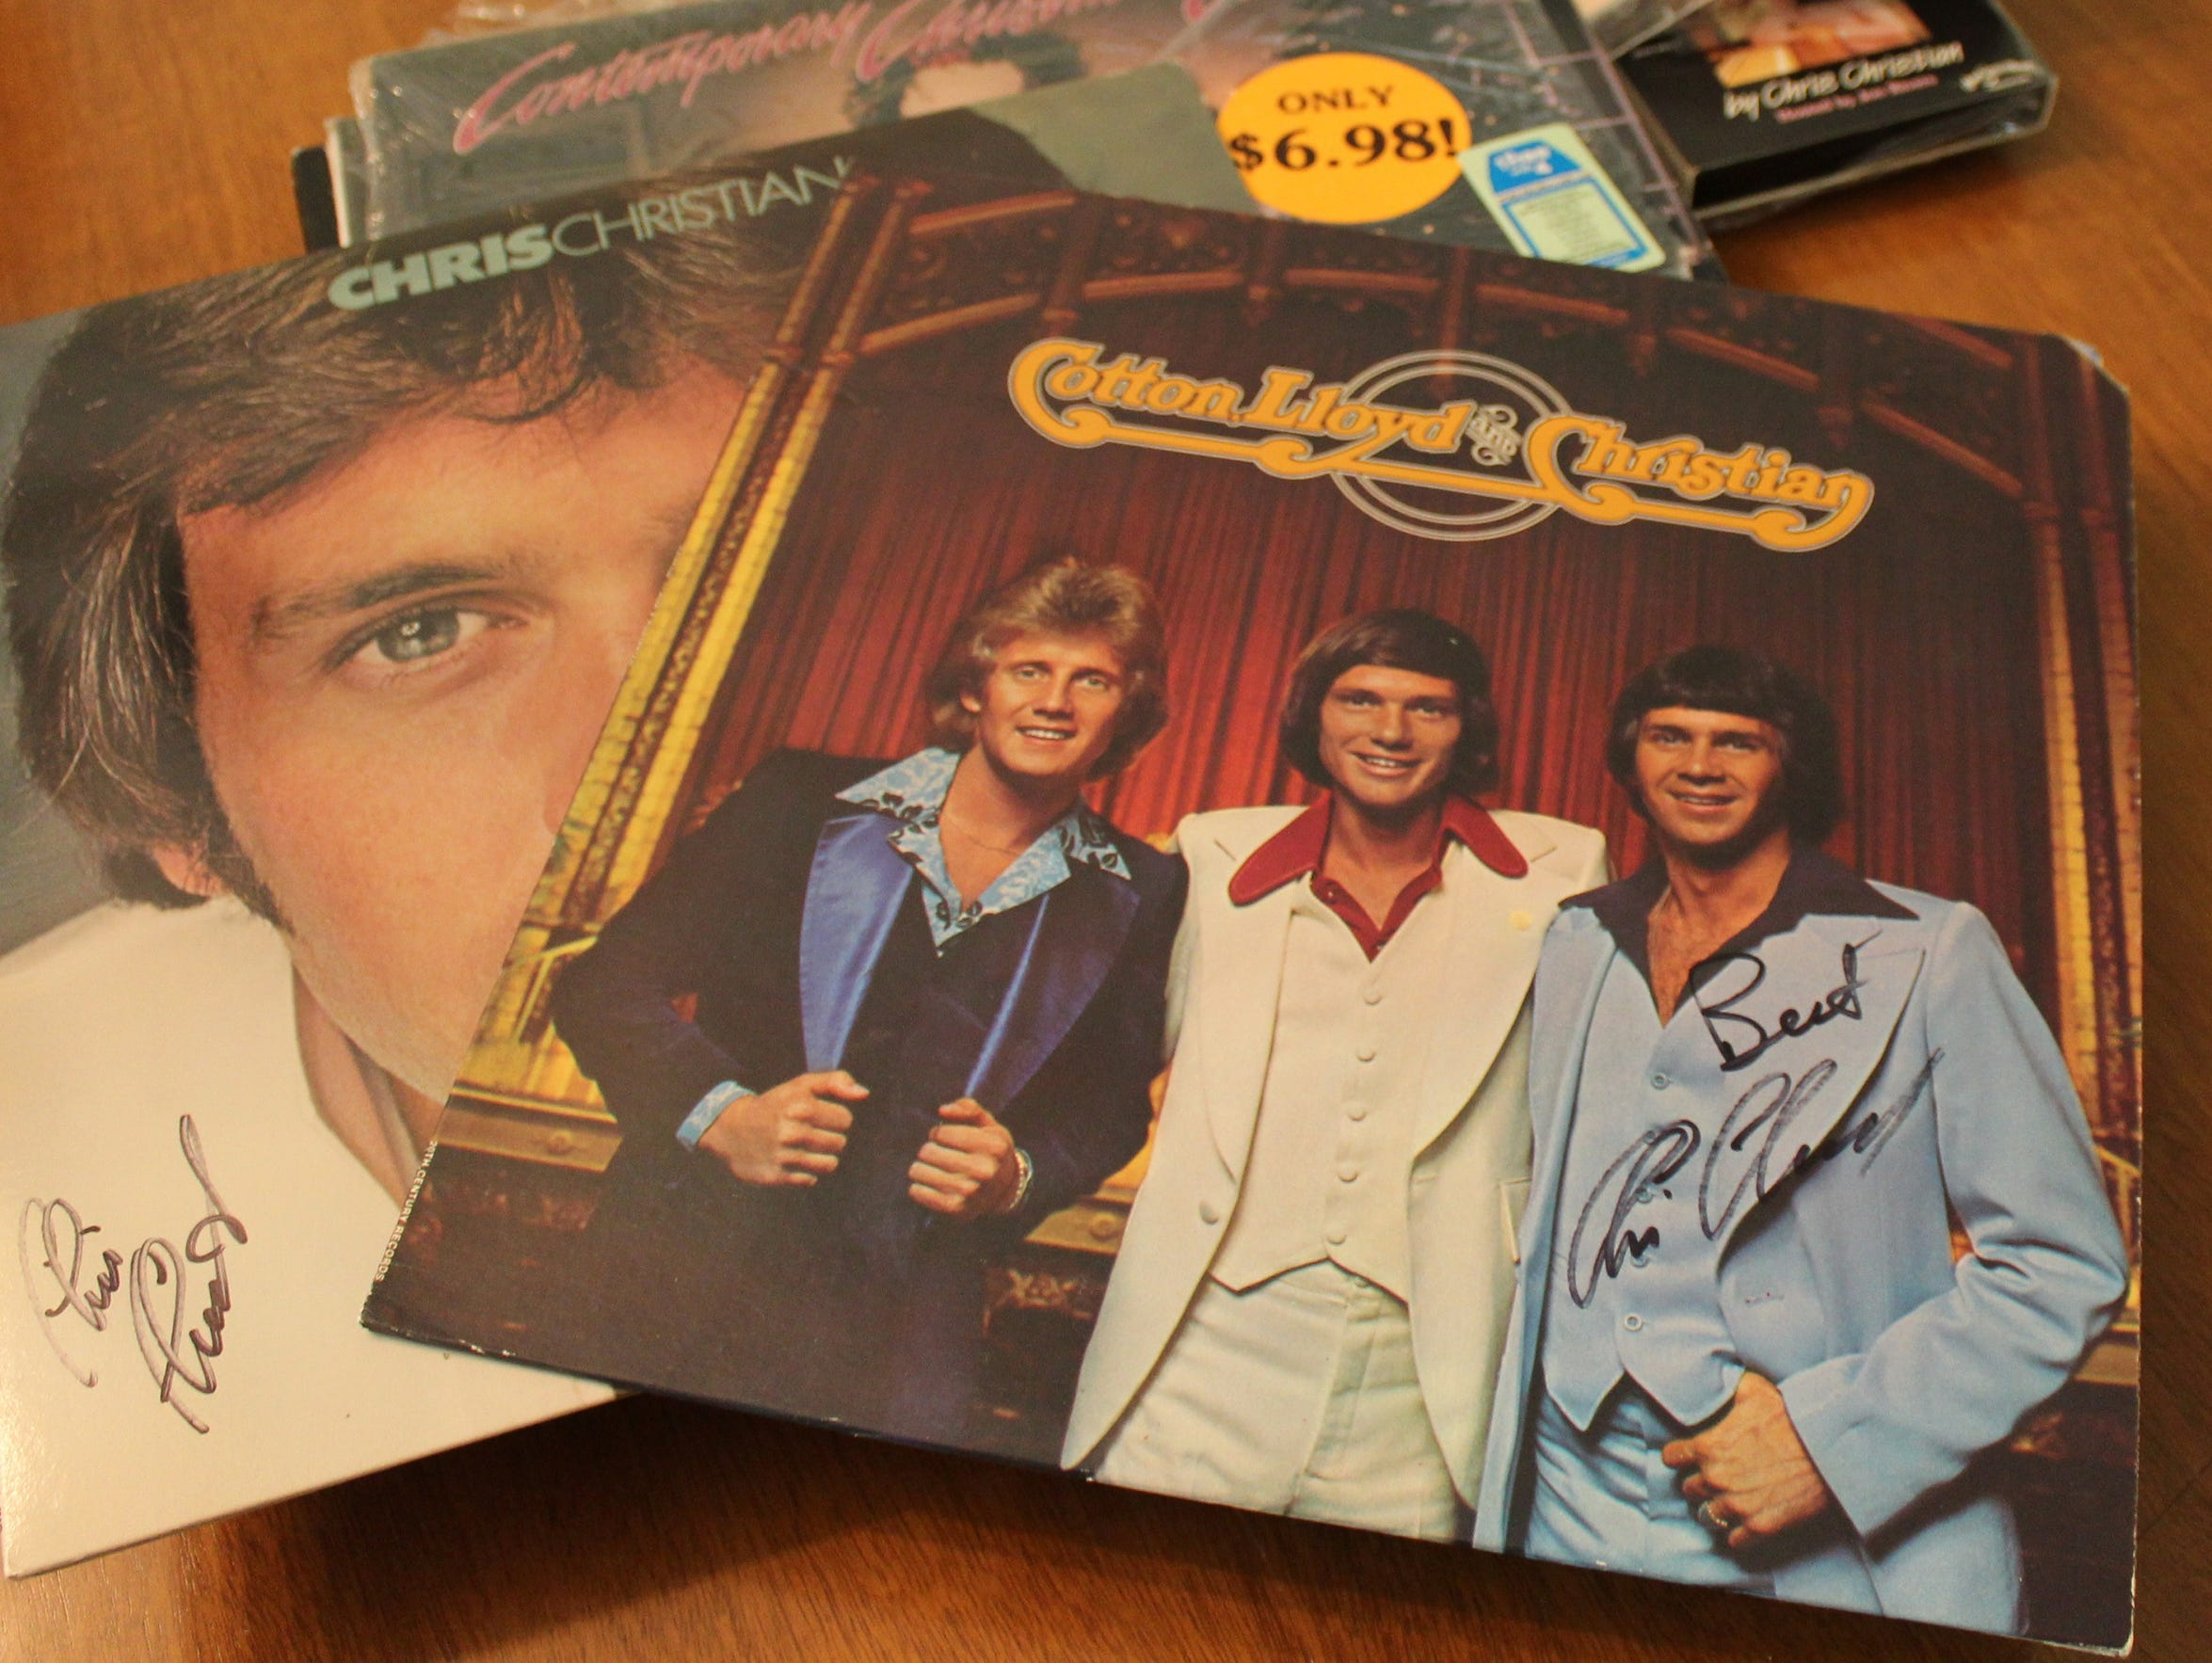 Signed copies of albums by Chris Christian are among